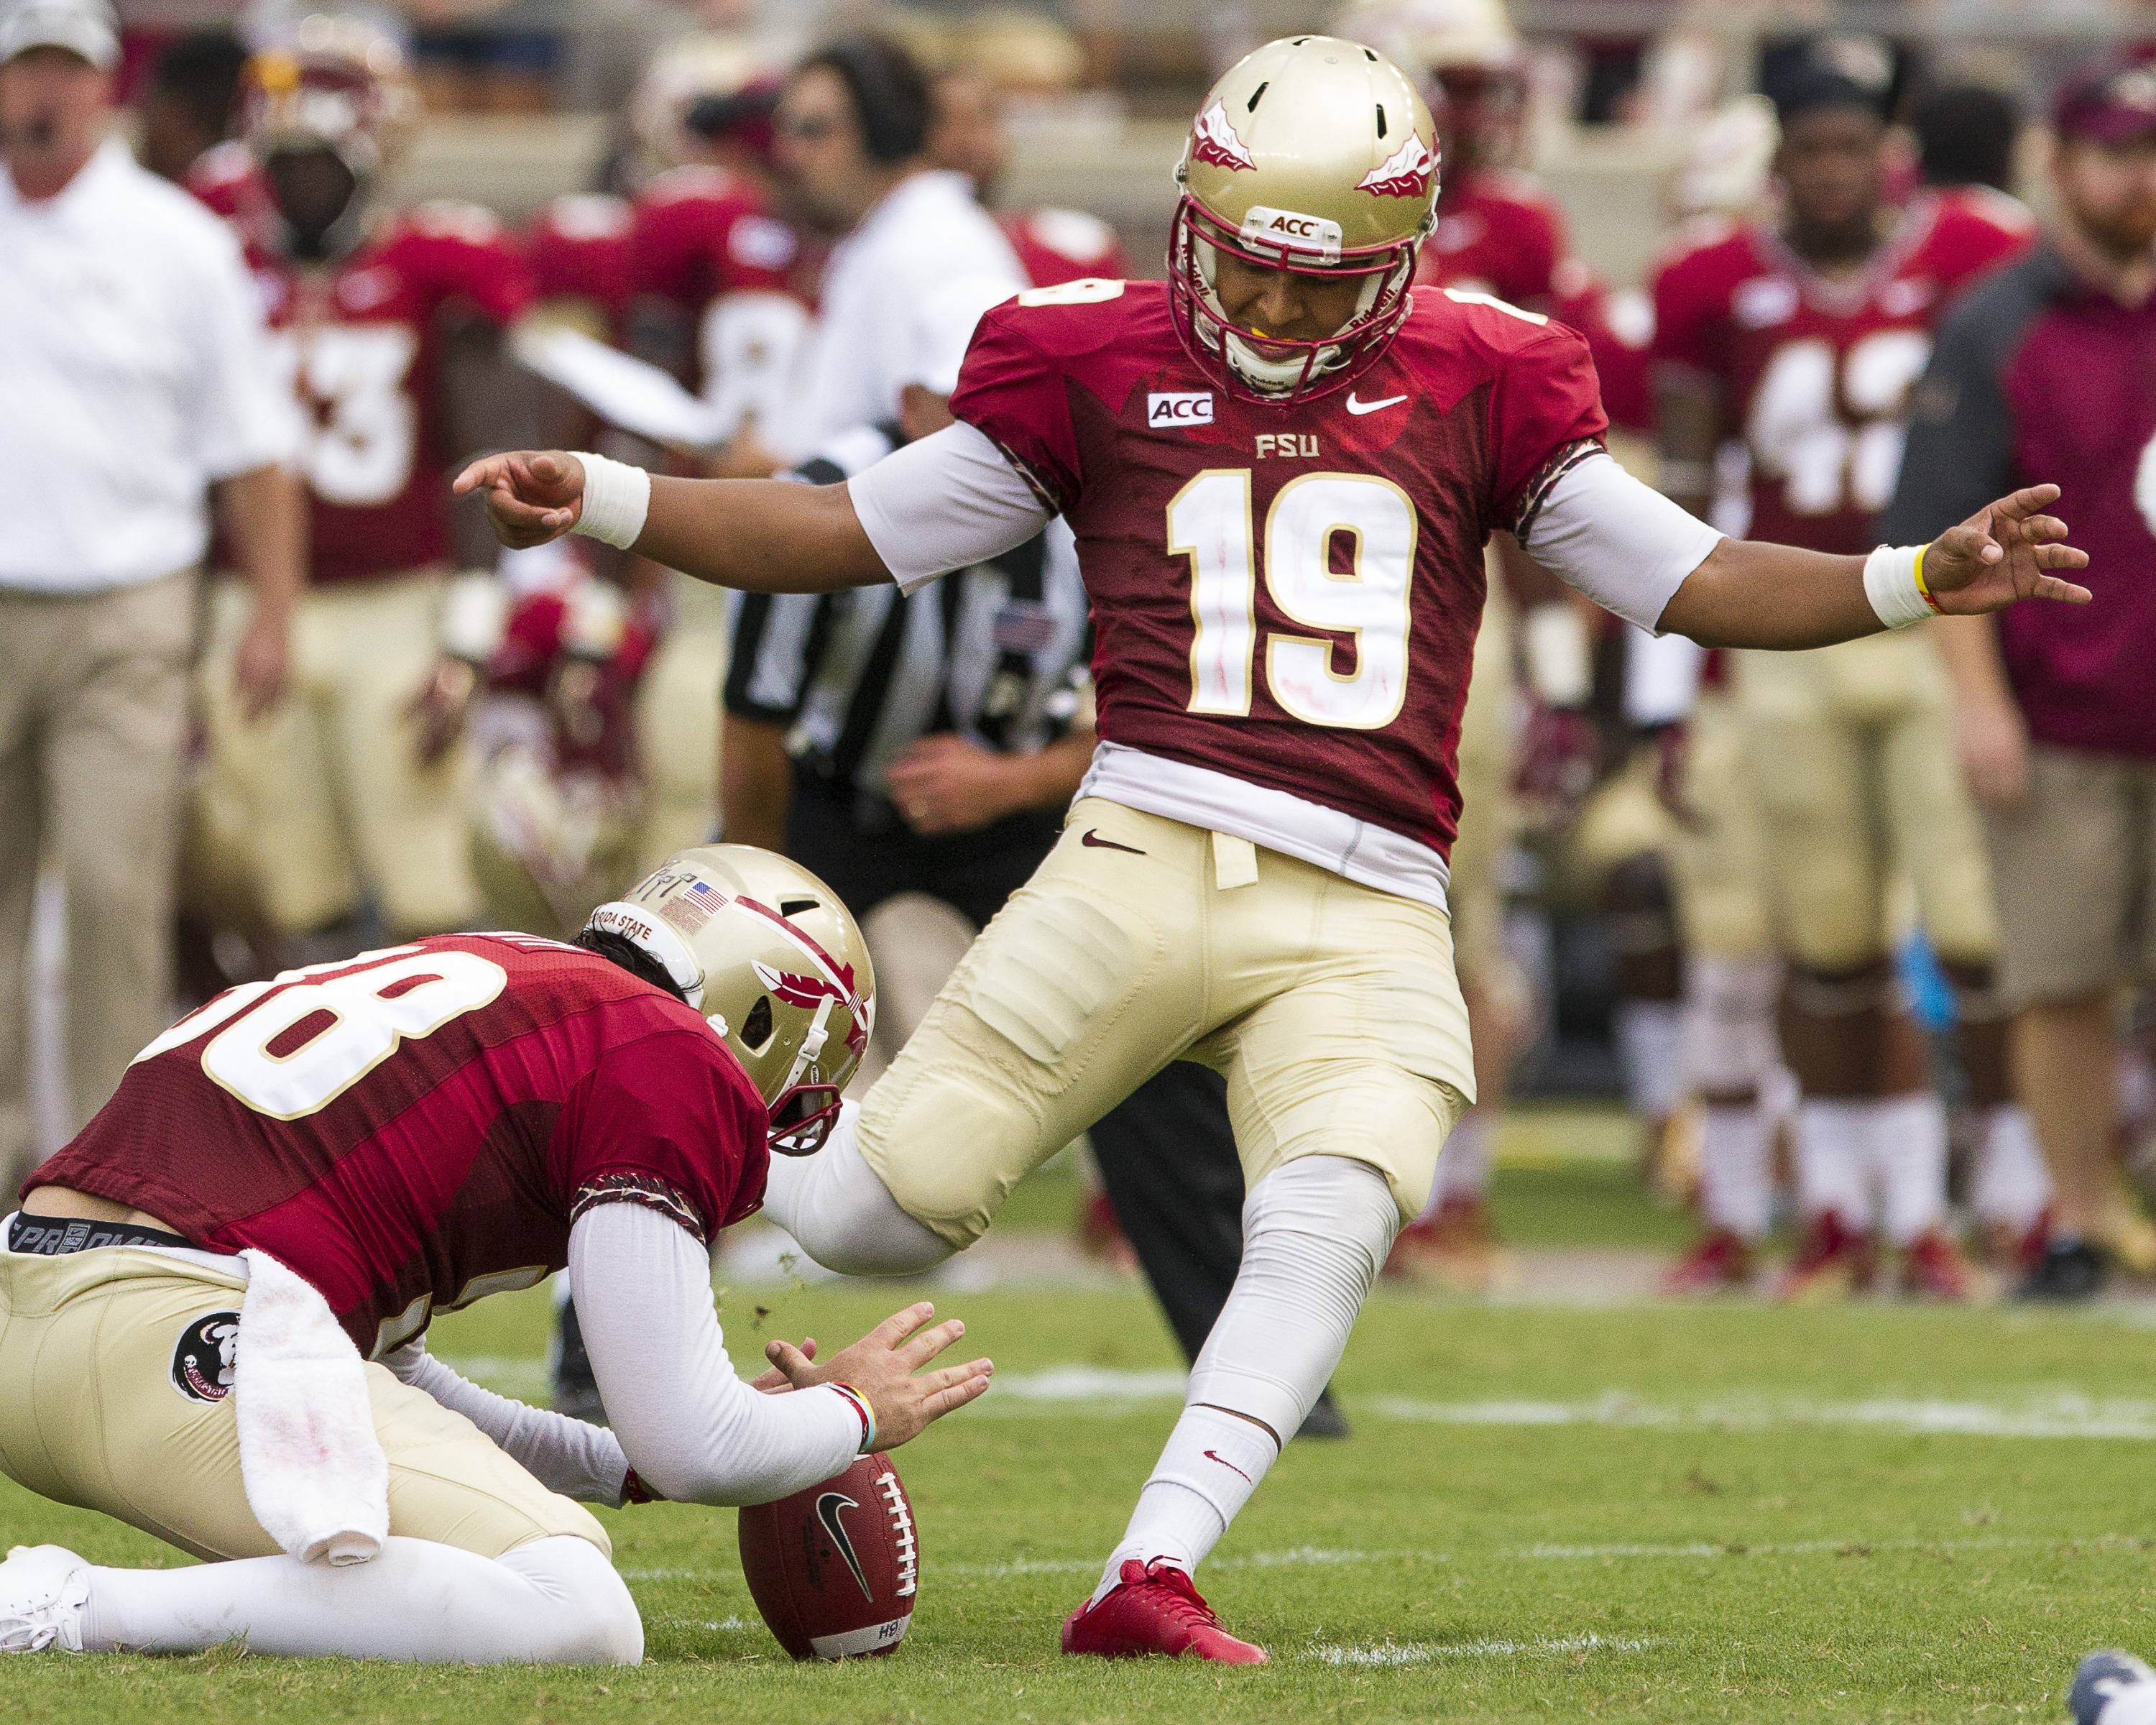 Roberto Aguayo (19) kicks an extra point during FSU's 62-7 win over Nevada on Saturday, Sept 14, 2013 in Tallahassee, Fla.